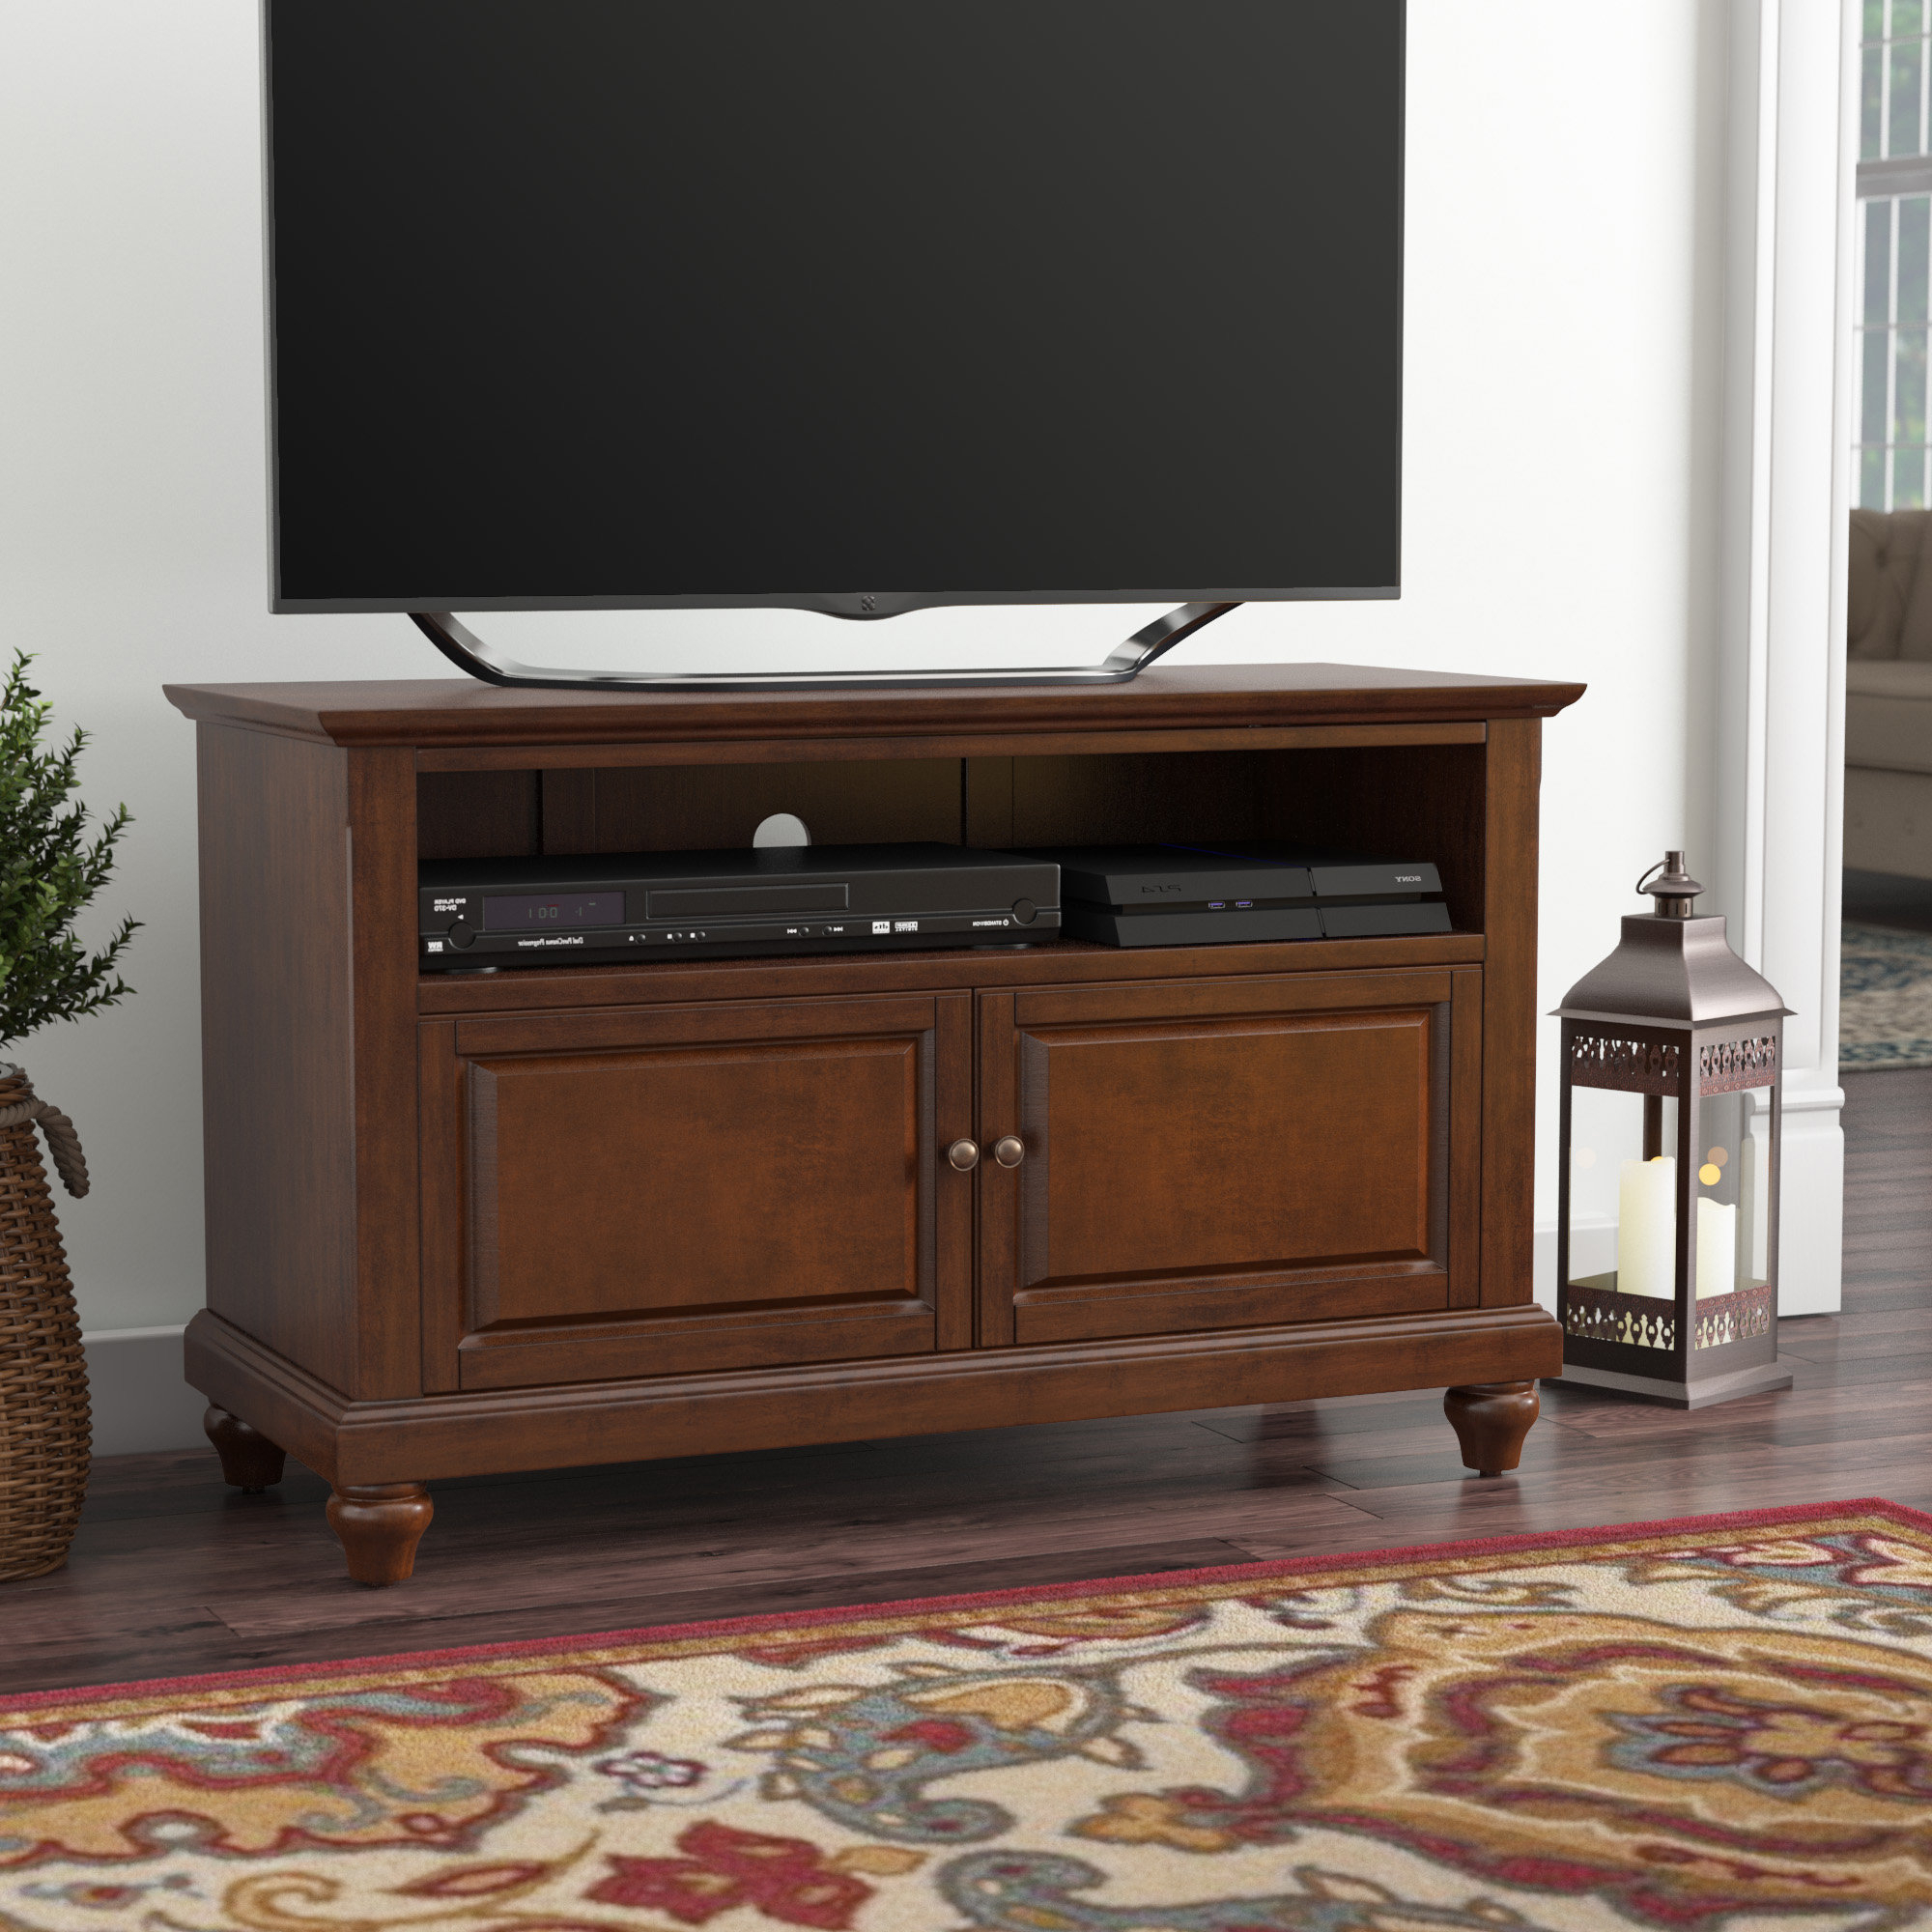 "Chunky Tv Cabinets With Trendy Three Posts Goreville Tv Stand For Tvs Up To 42"" & Reviews (View 18 of 20)"